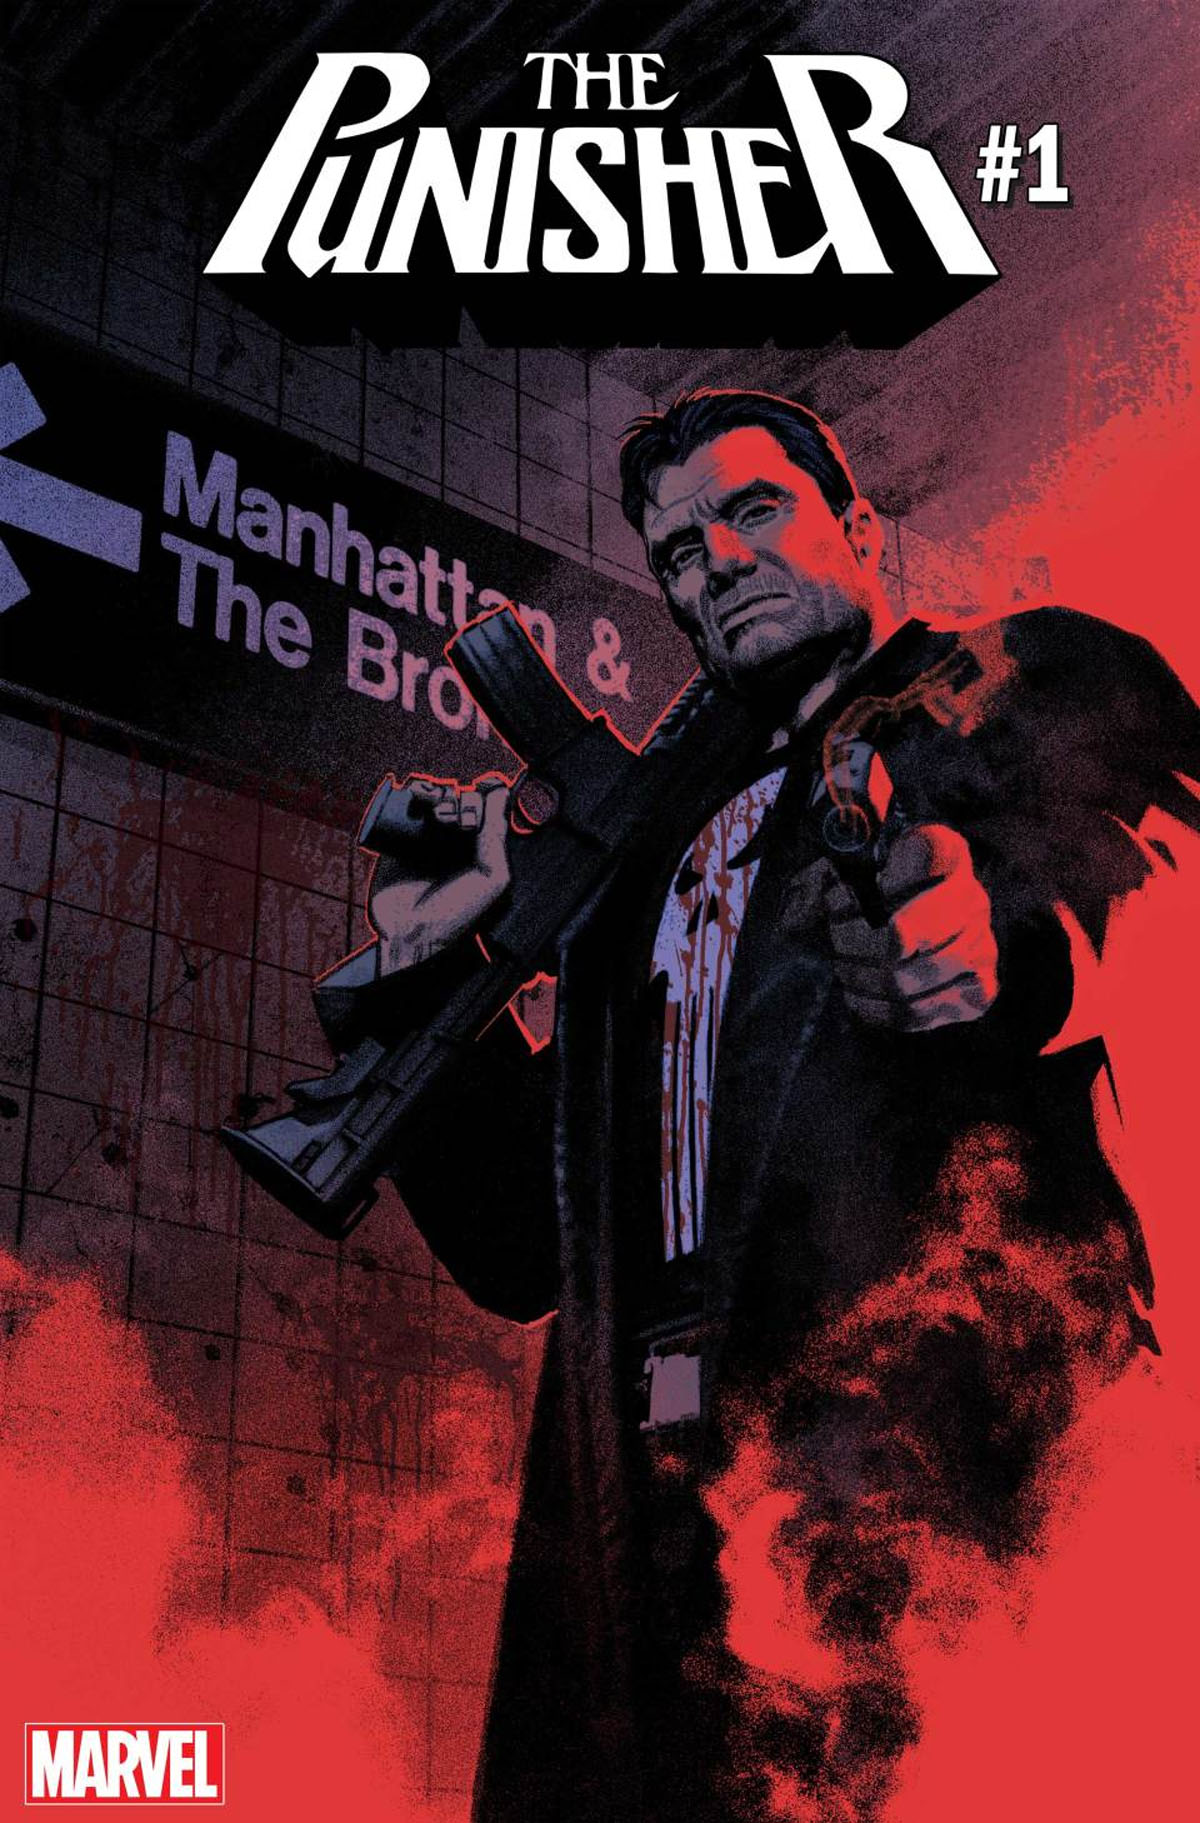 The Punisher #1 cover